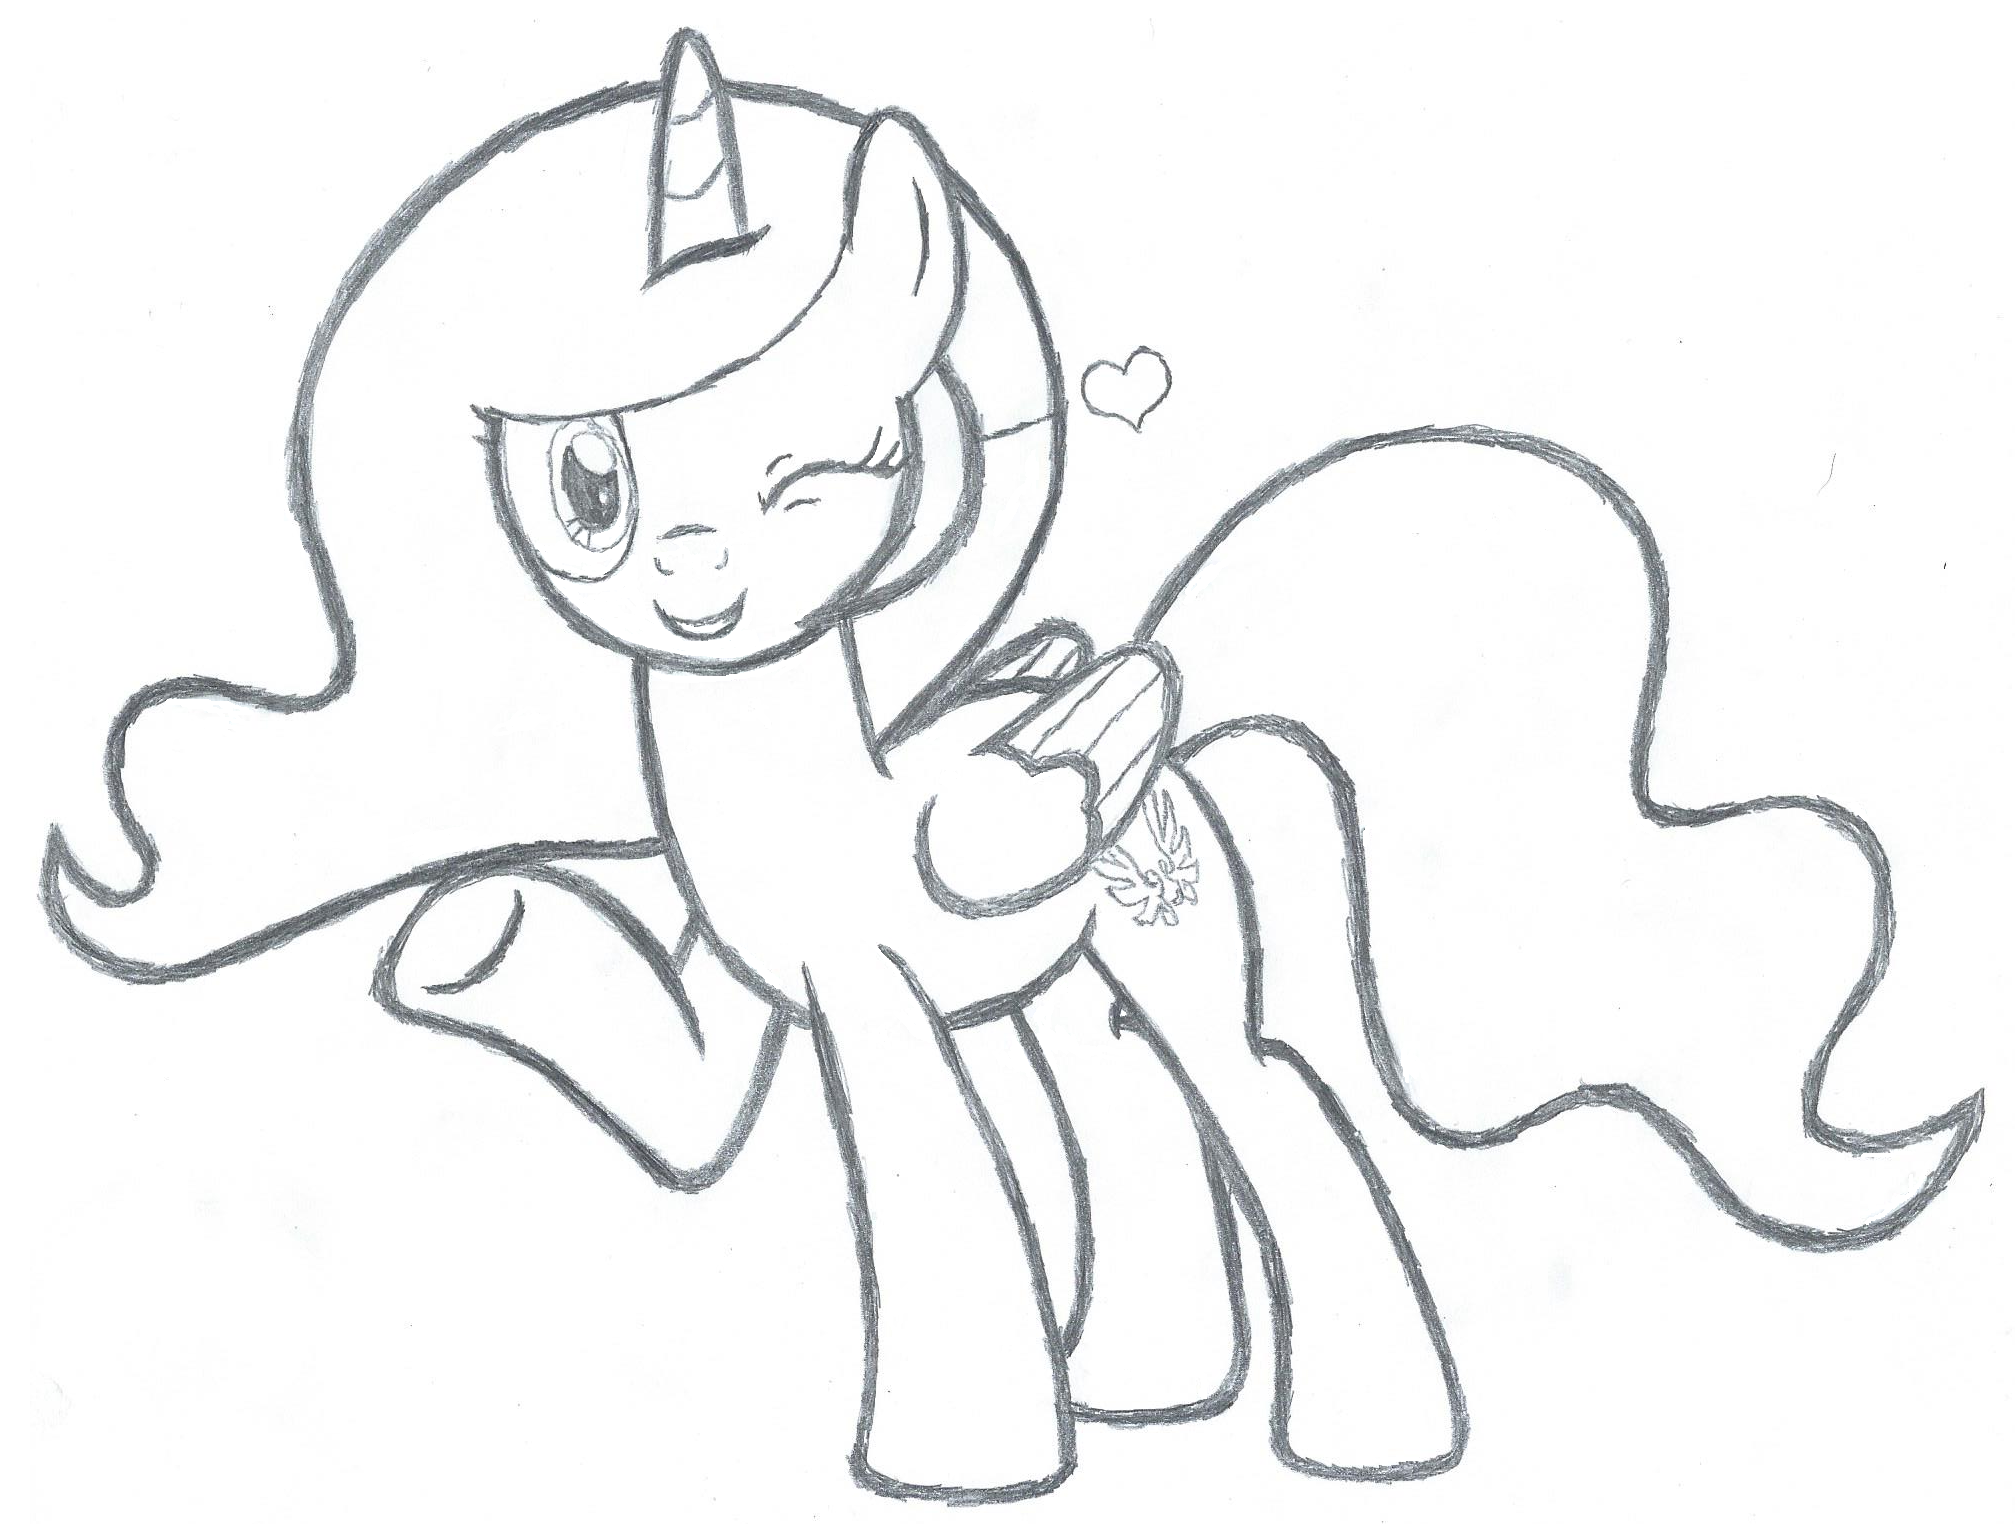 2016x1524 Mlp Pencil Trace Holly 2 (Redone) By Sfrhk678